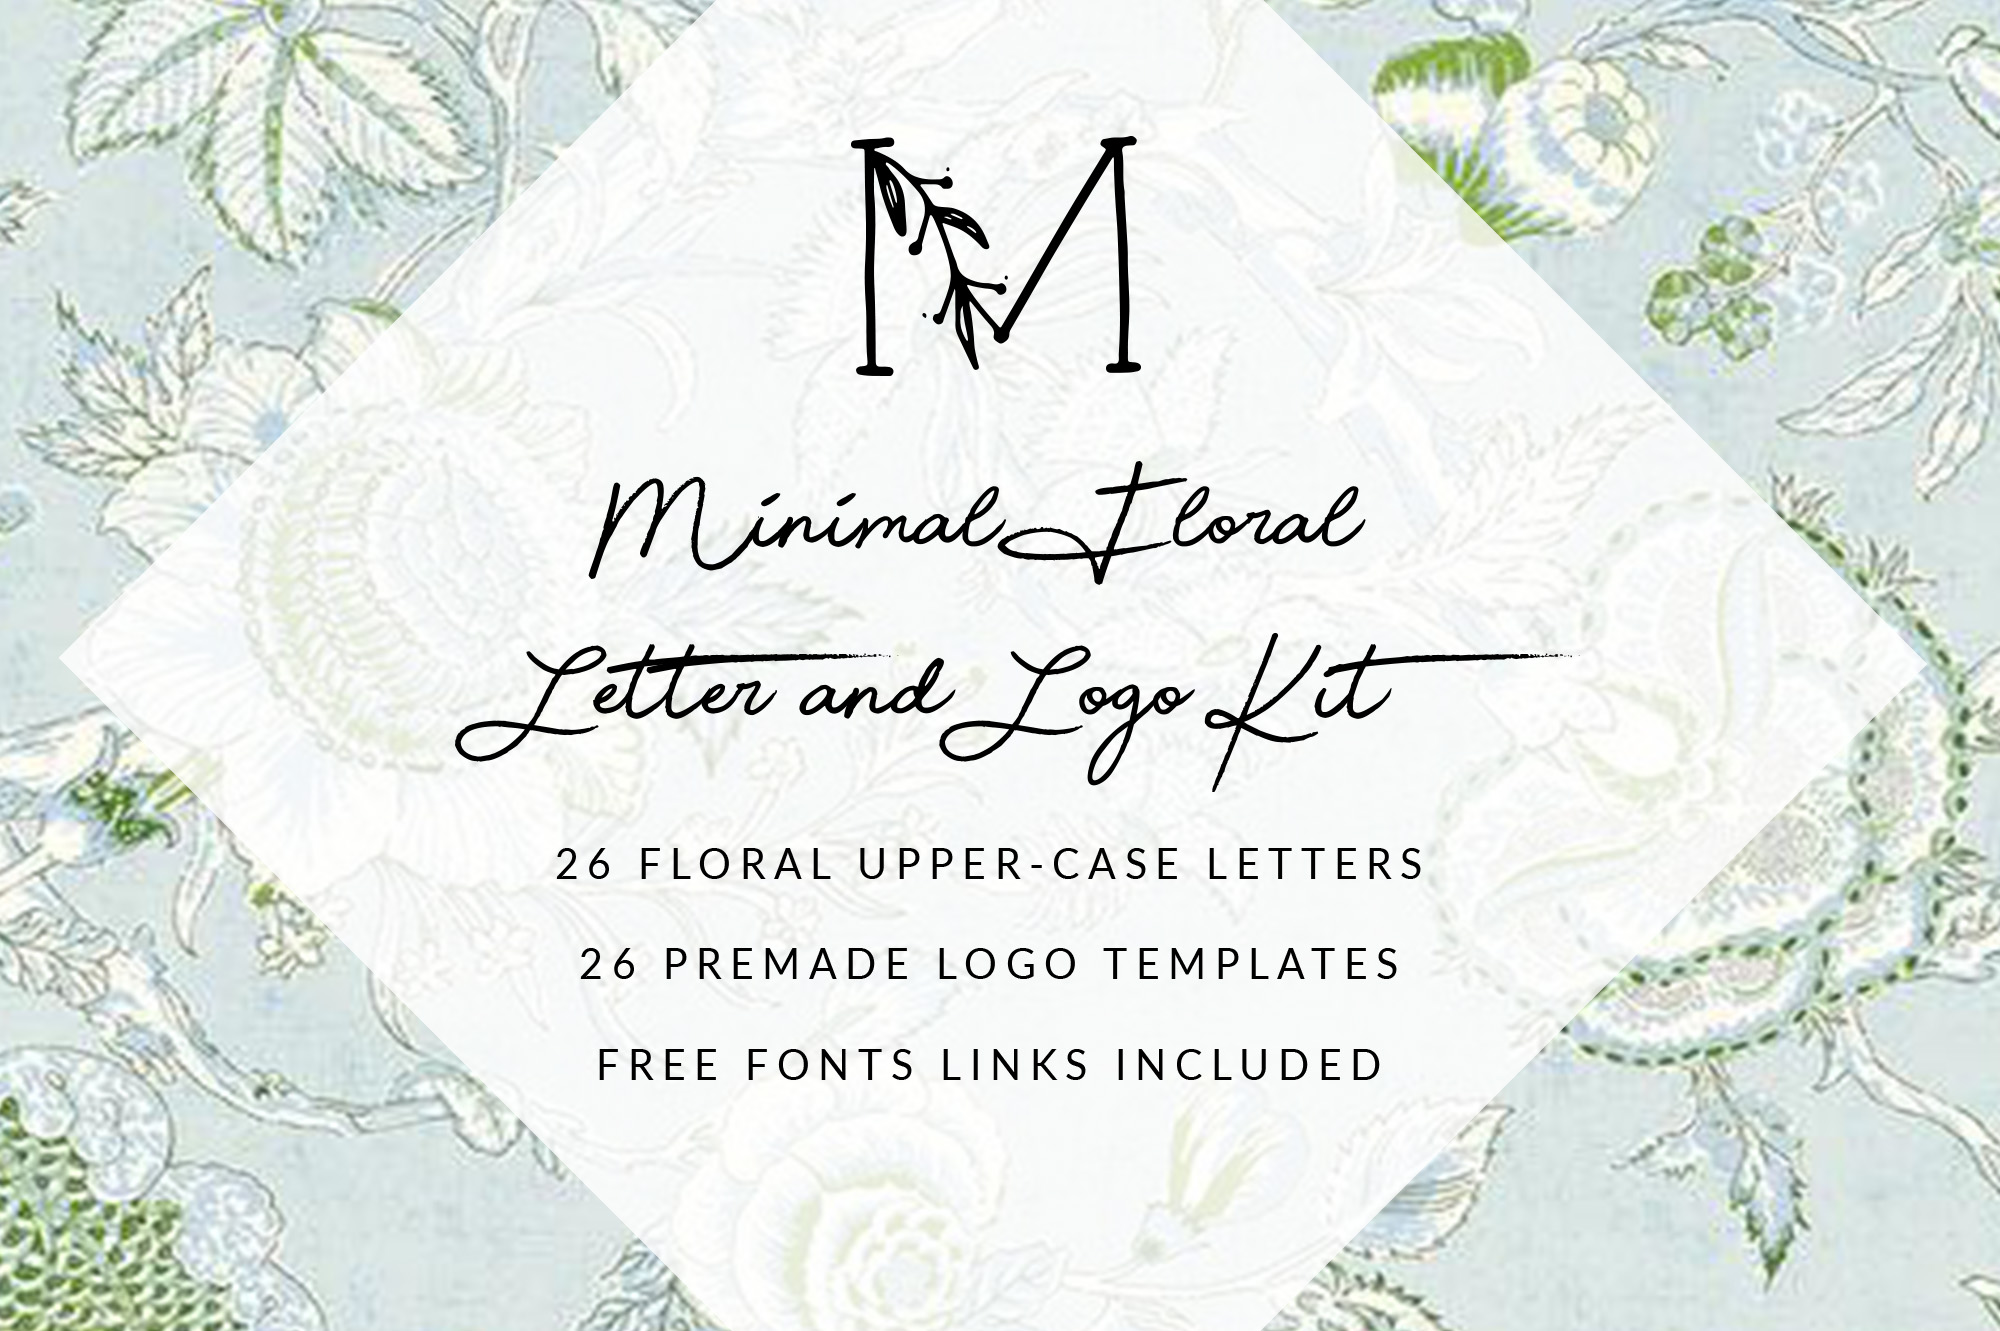 MINIMAL FLORAL LETTER AND LOGO KIT example image 2